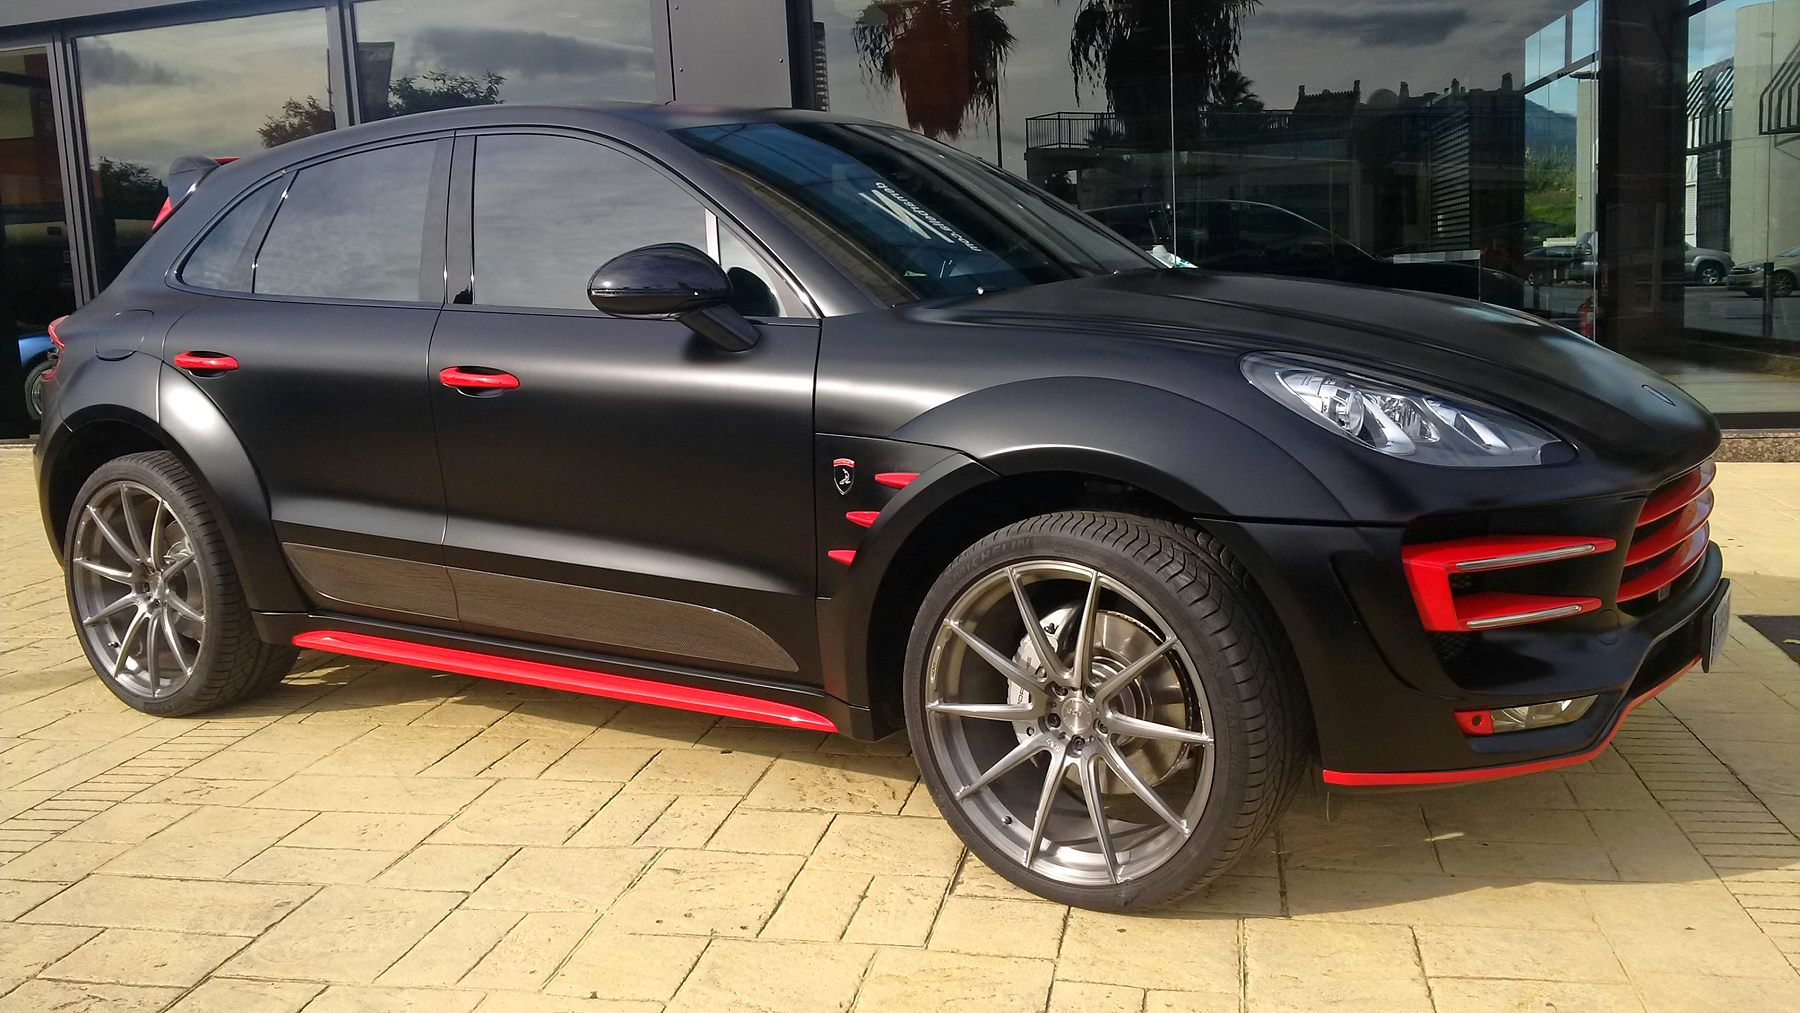 Porsche Macan Ursa By Topcar Gets Unique Black And Red